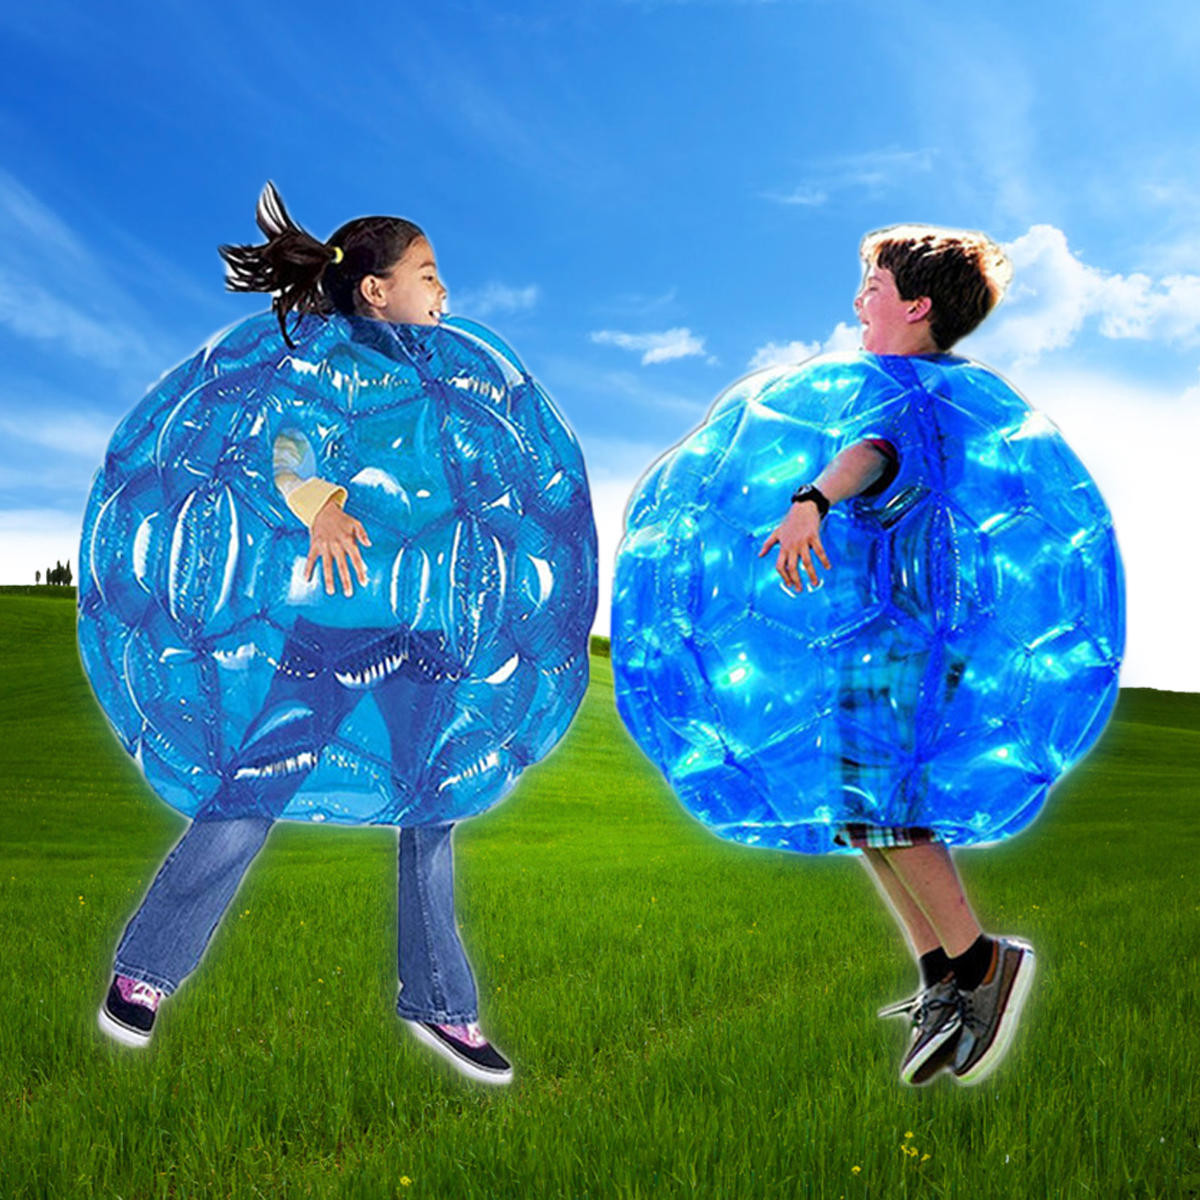 bubble ball vase of 90cm pvc inflatable toy body bubble toy ball bumper ball football with 90cm pvc inflatable toy body bubble toy ball bumper ball football buddy kid outdoor play